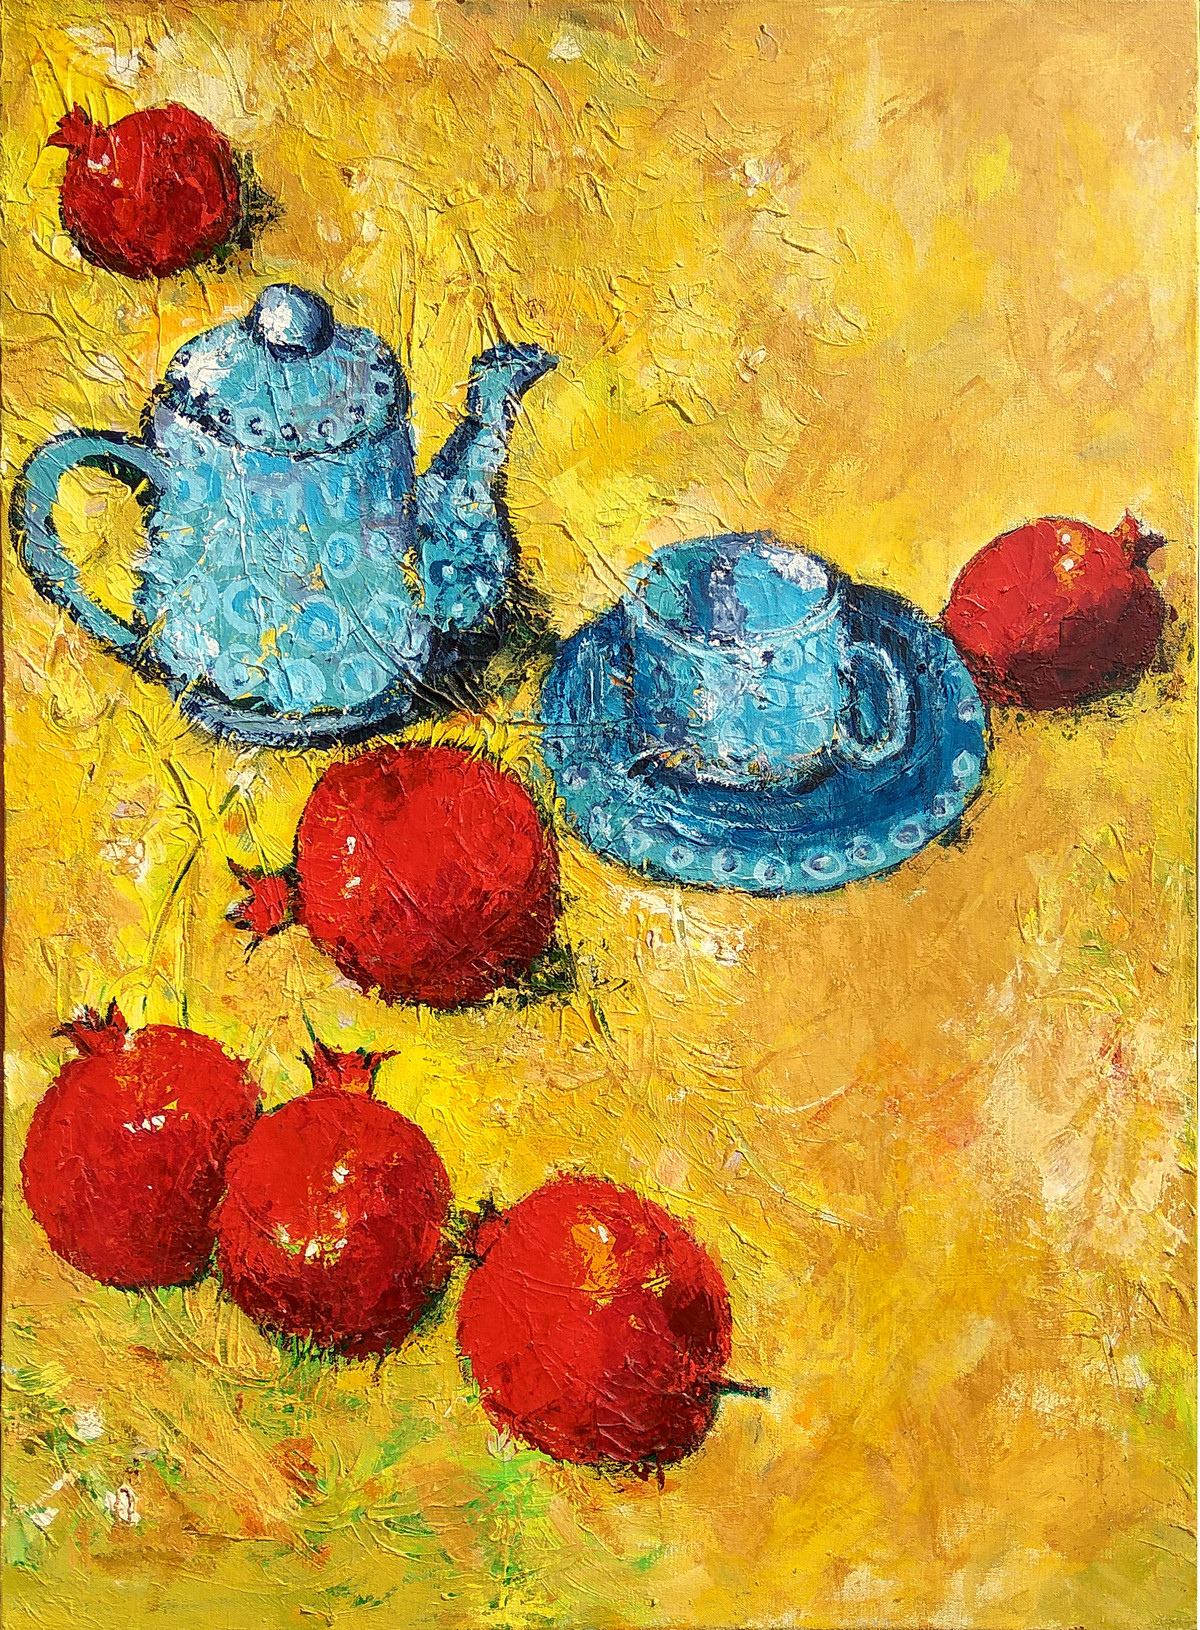 Still Life with Pomegranate & Tea Pot (Indian Summer)-III by Animesh Roy, Expressionism Painting, Acrylic on Canvas, Orange color